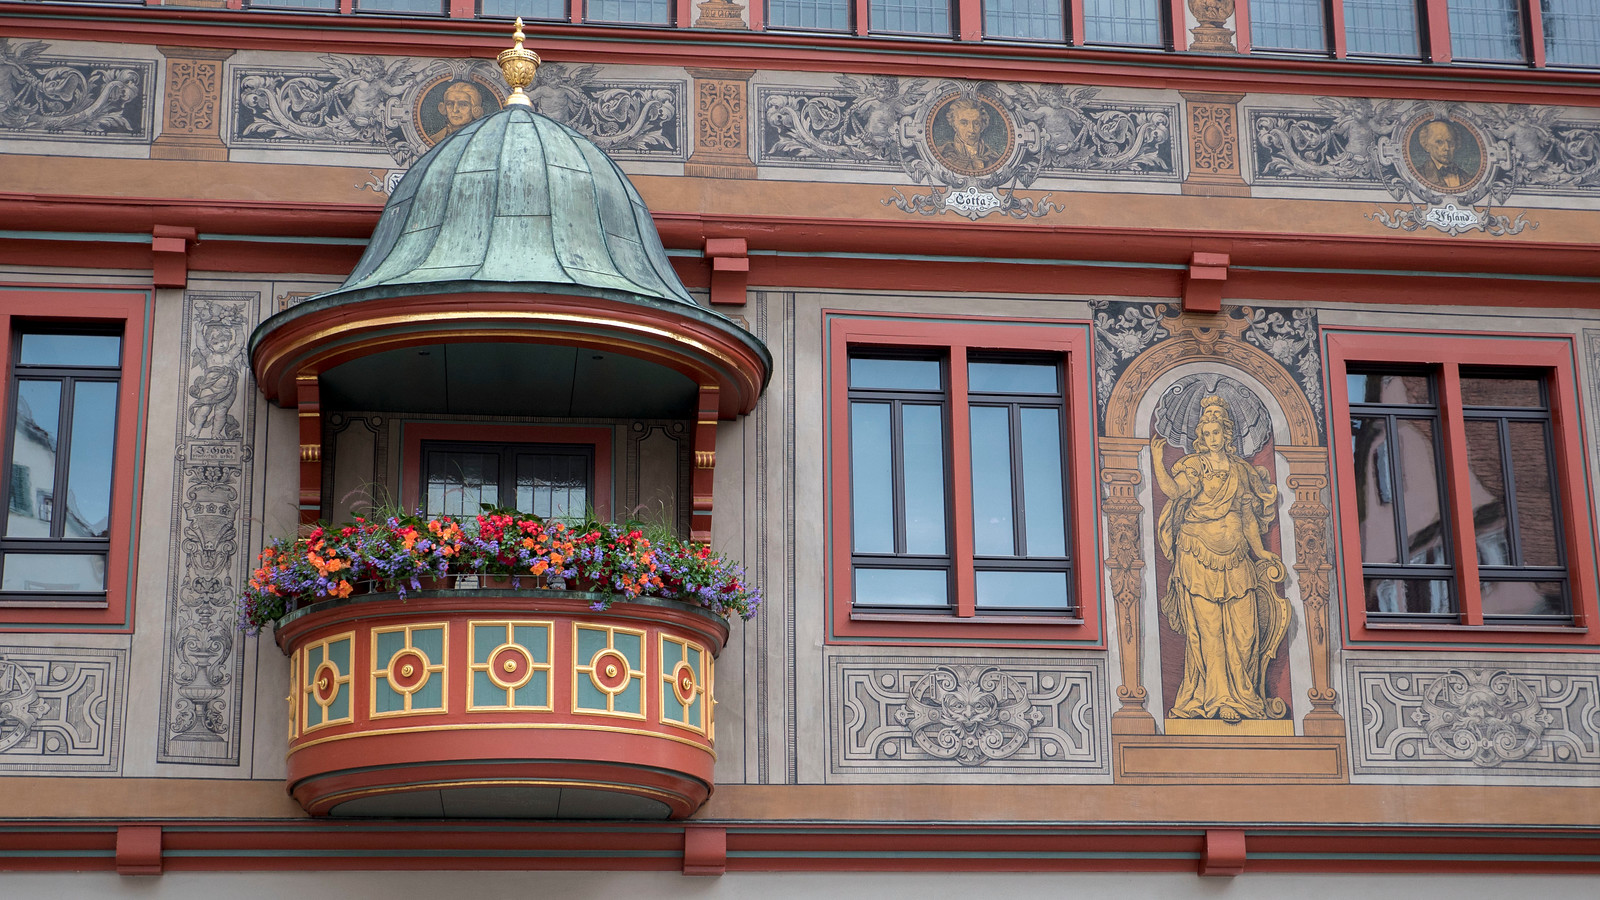 Intricate designs on the Rathaus in Tubingen. Things to do in Tubingen Germany.